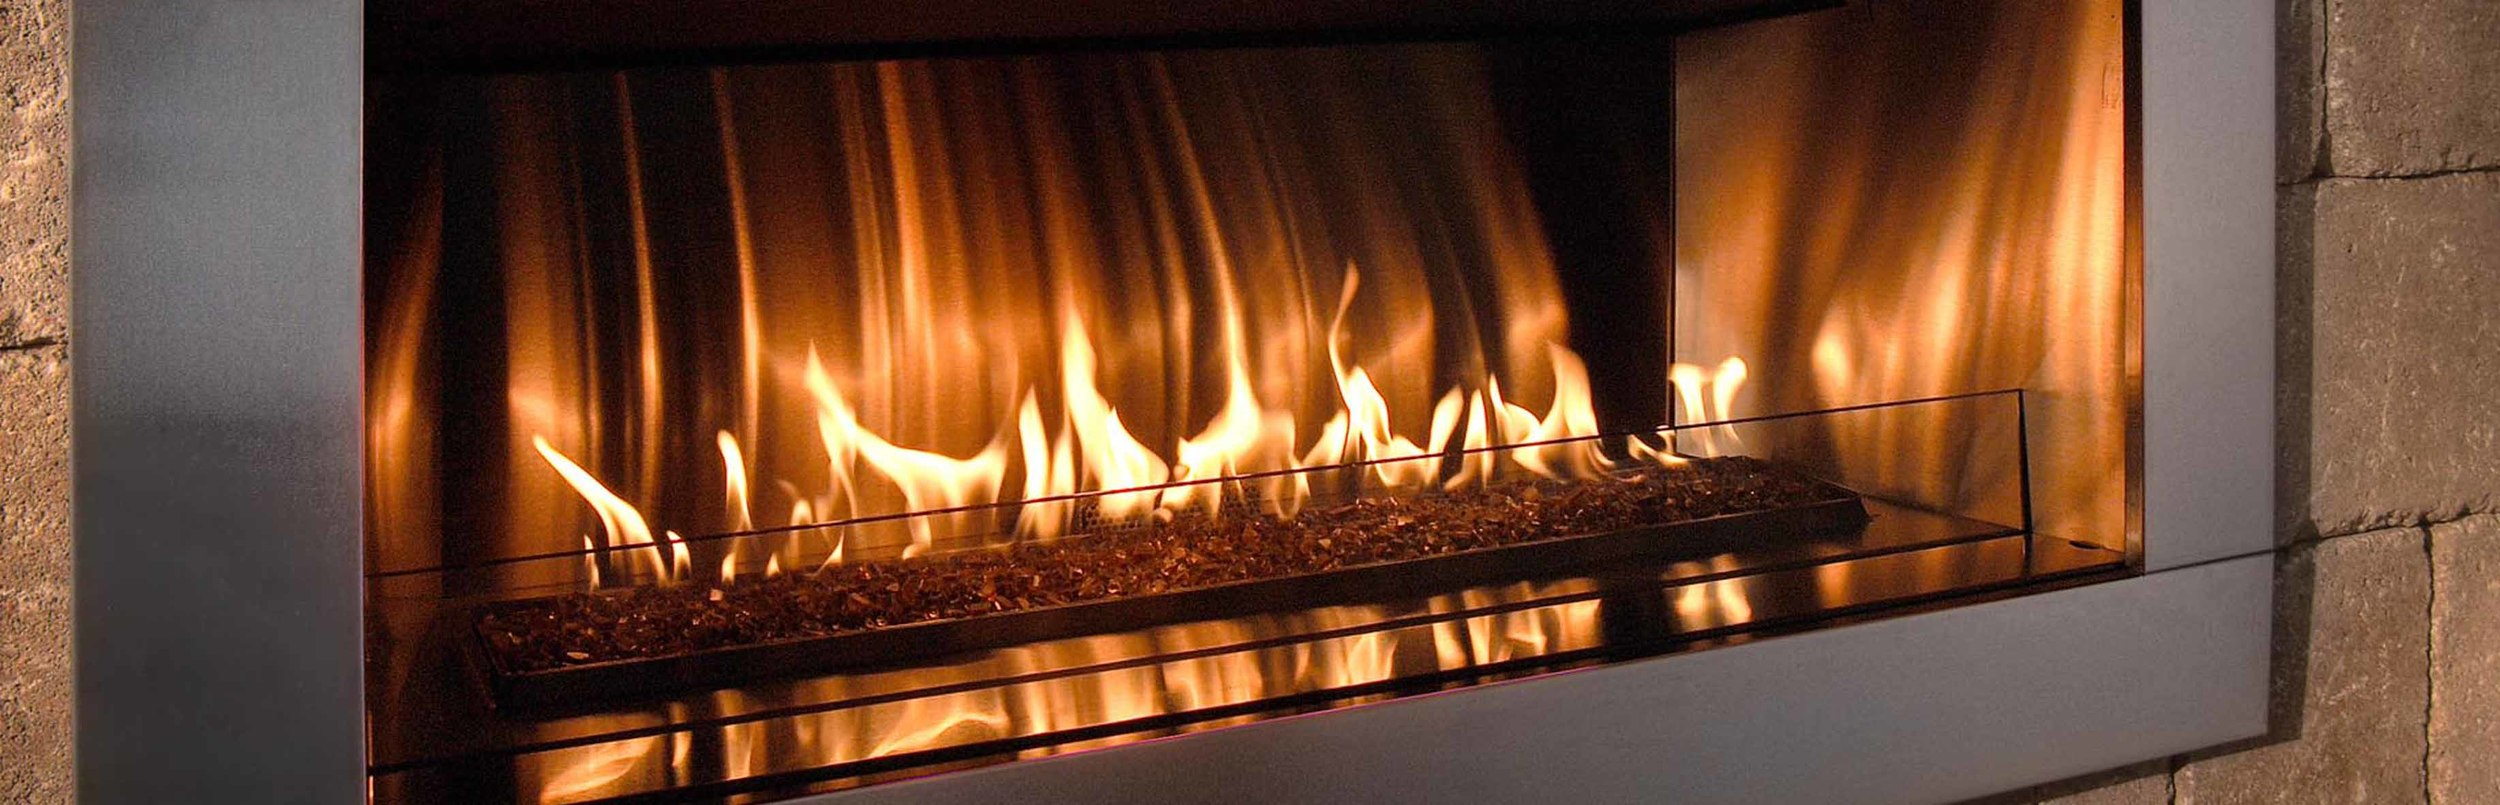 fireplace gas queensland gas fitter commerical testing.jpg